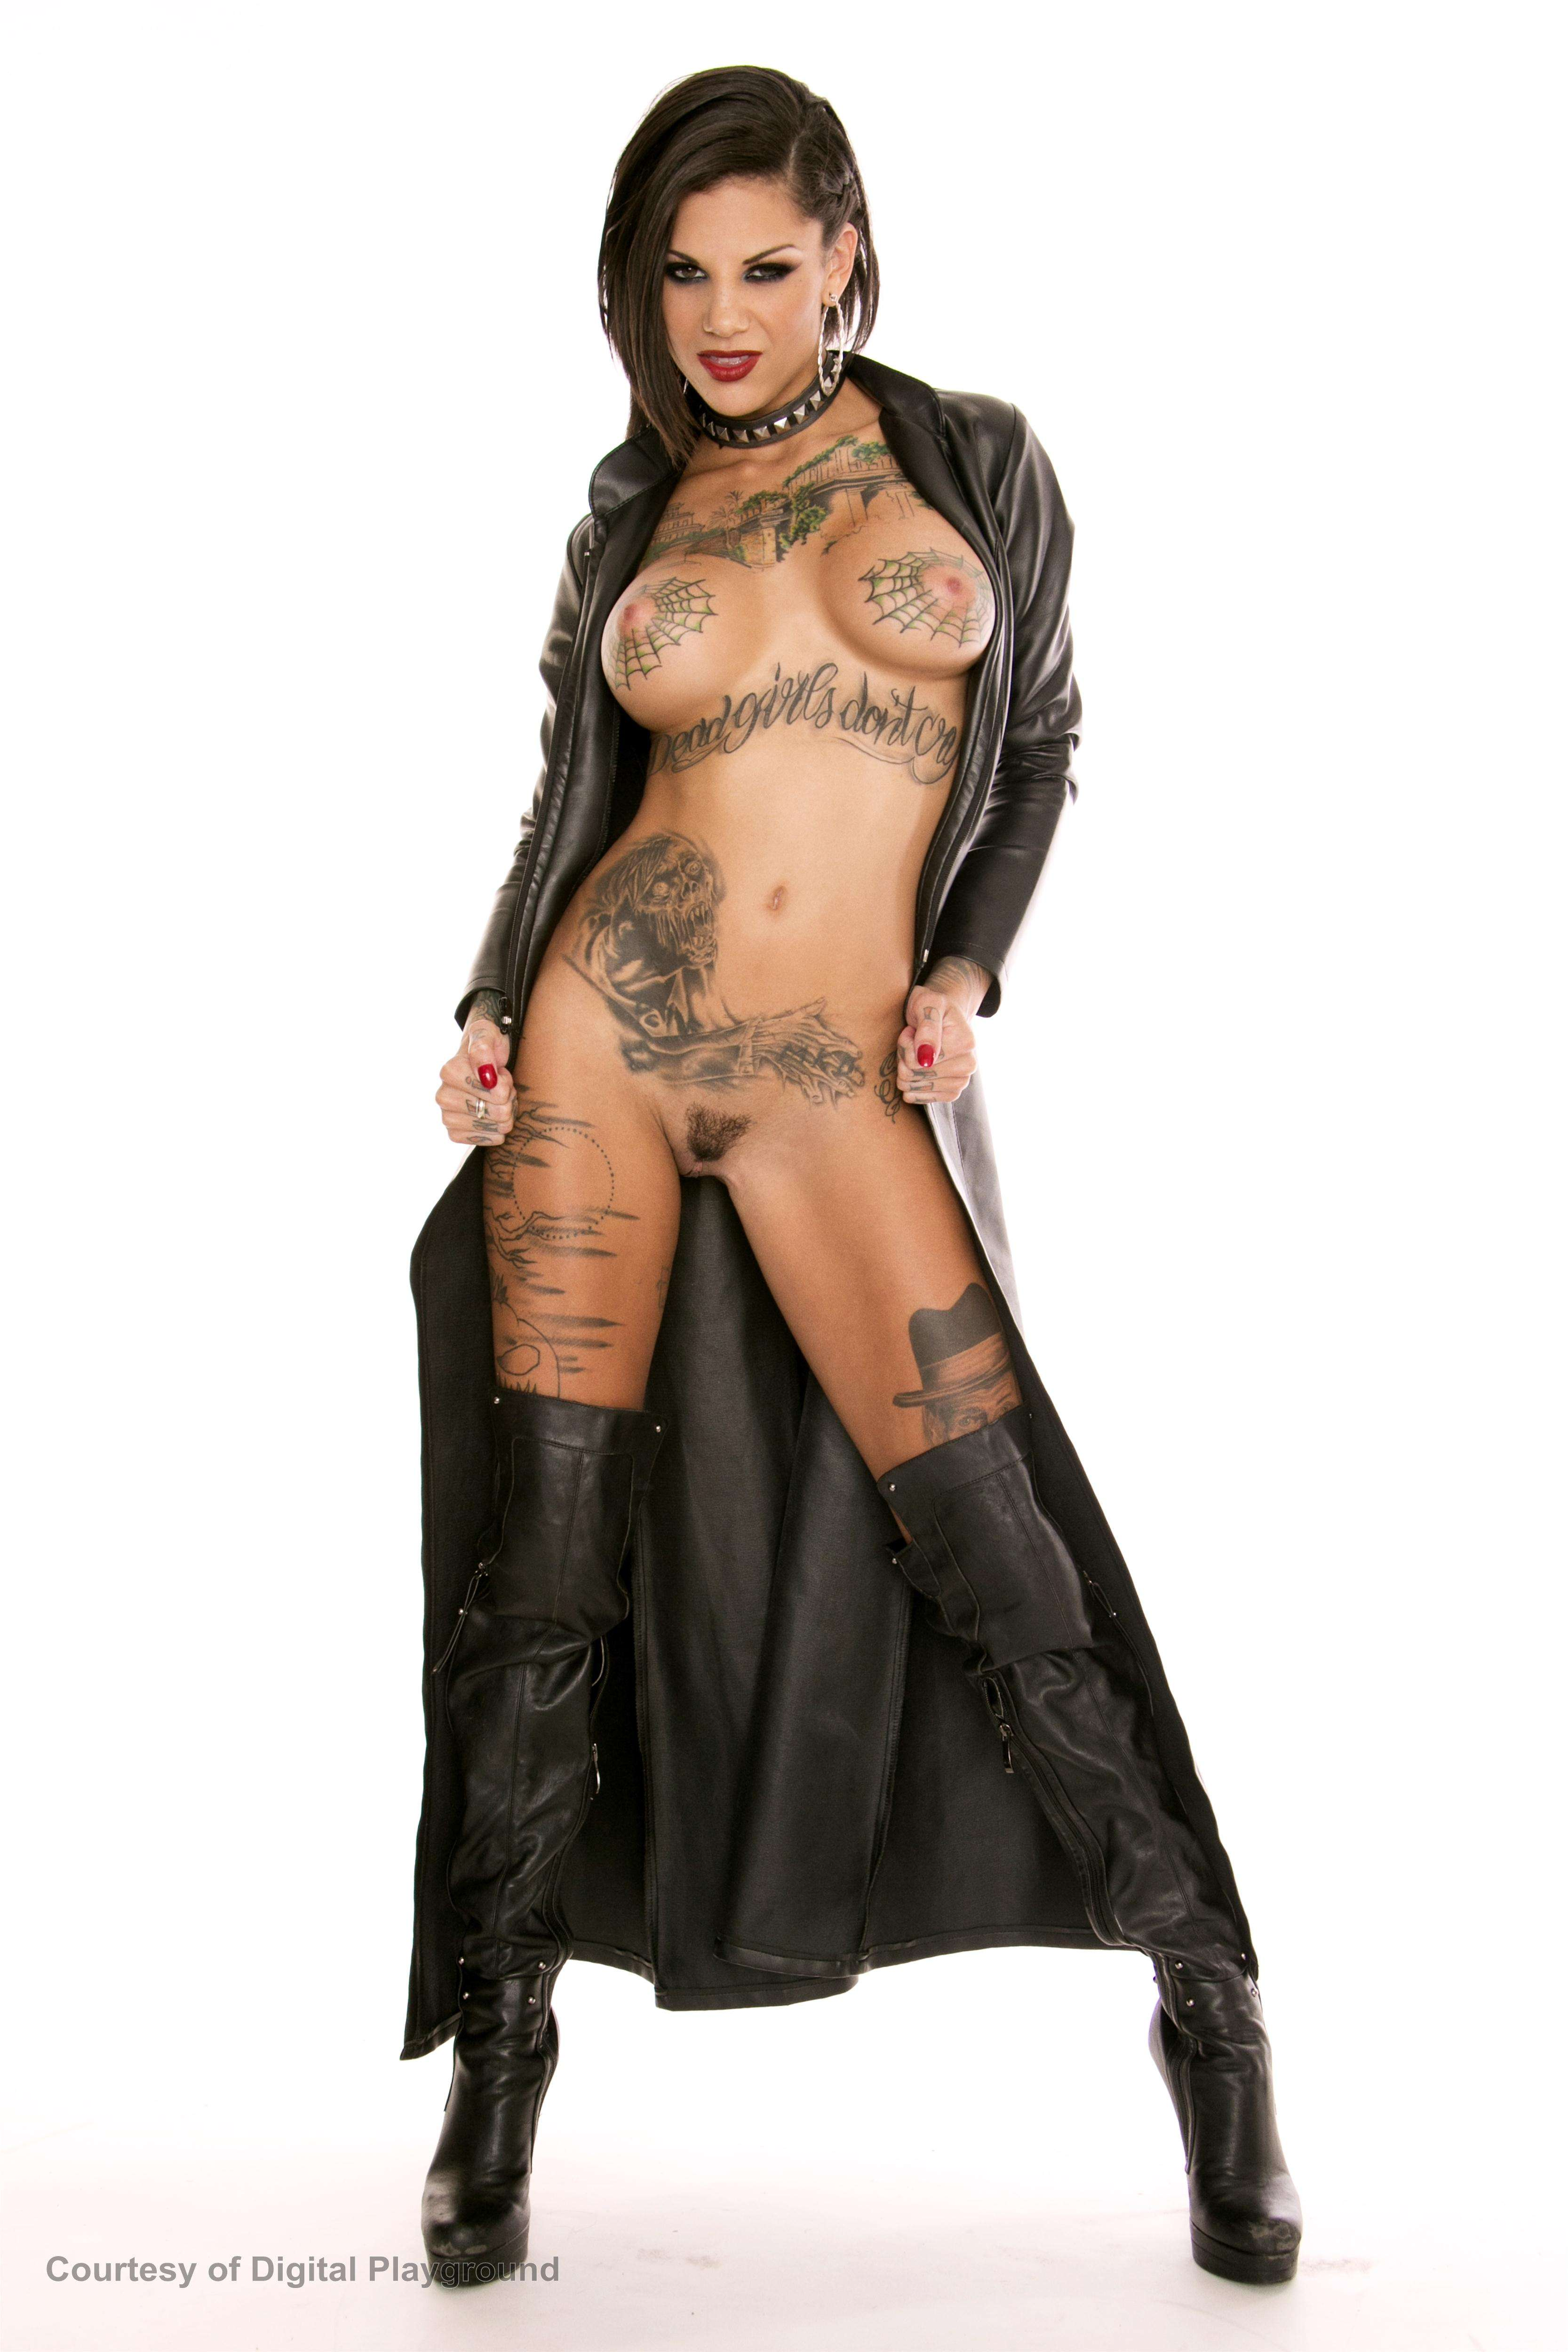 Bonnie Rotten Says Guten Tag To Germany And Switzerland - Official Blog Of Adult Empire-6522